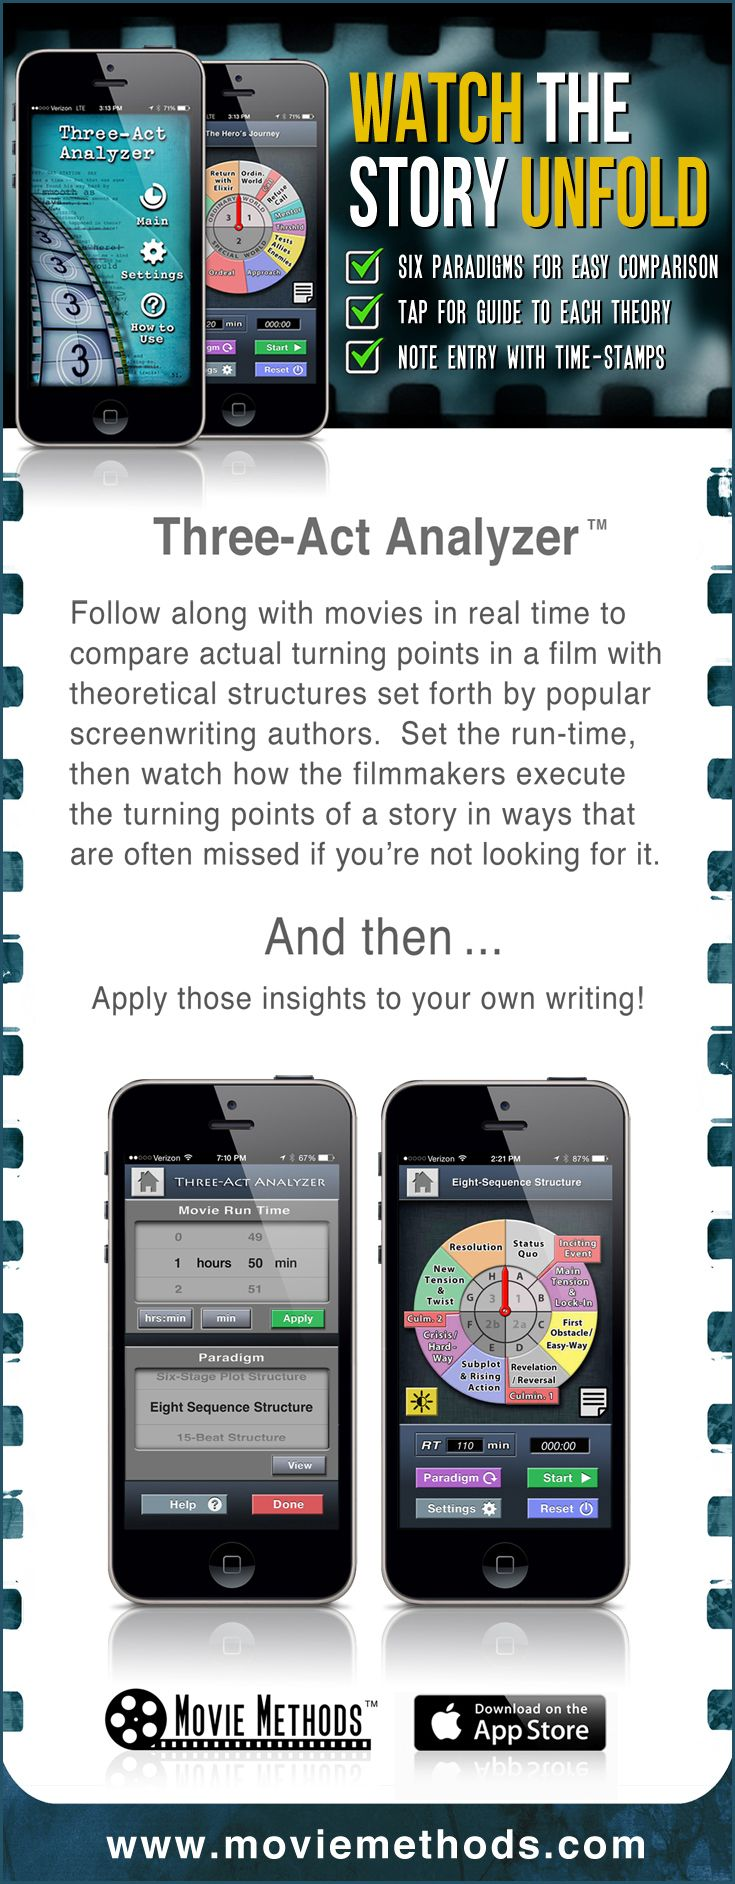 Innovative Story-Analysis app for screenwriters, film students and story analysts. Puts all of the structural theories at your fingertips for easy one-to-one comparison as you write.